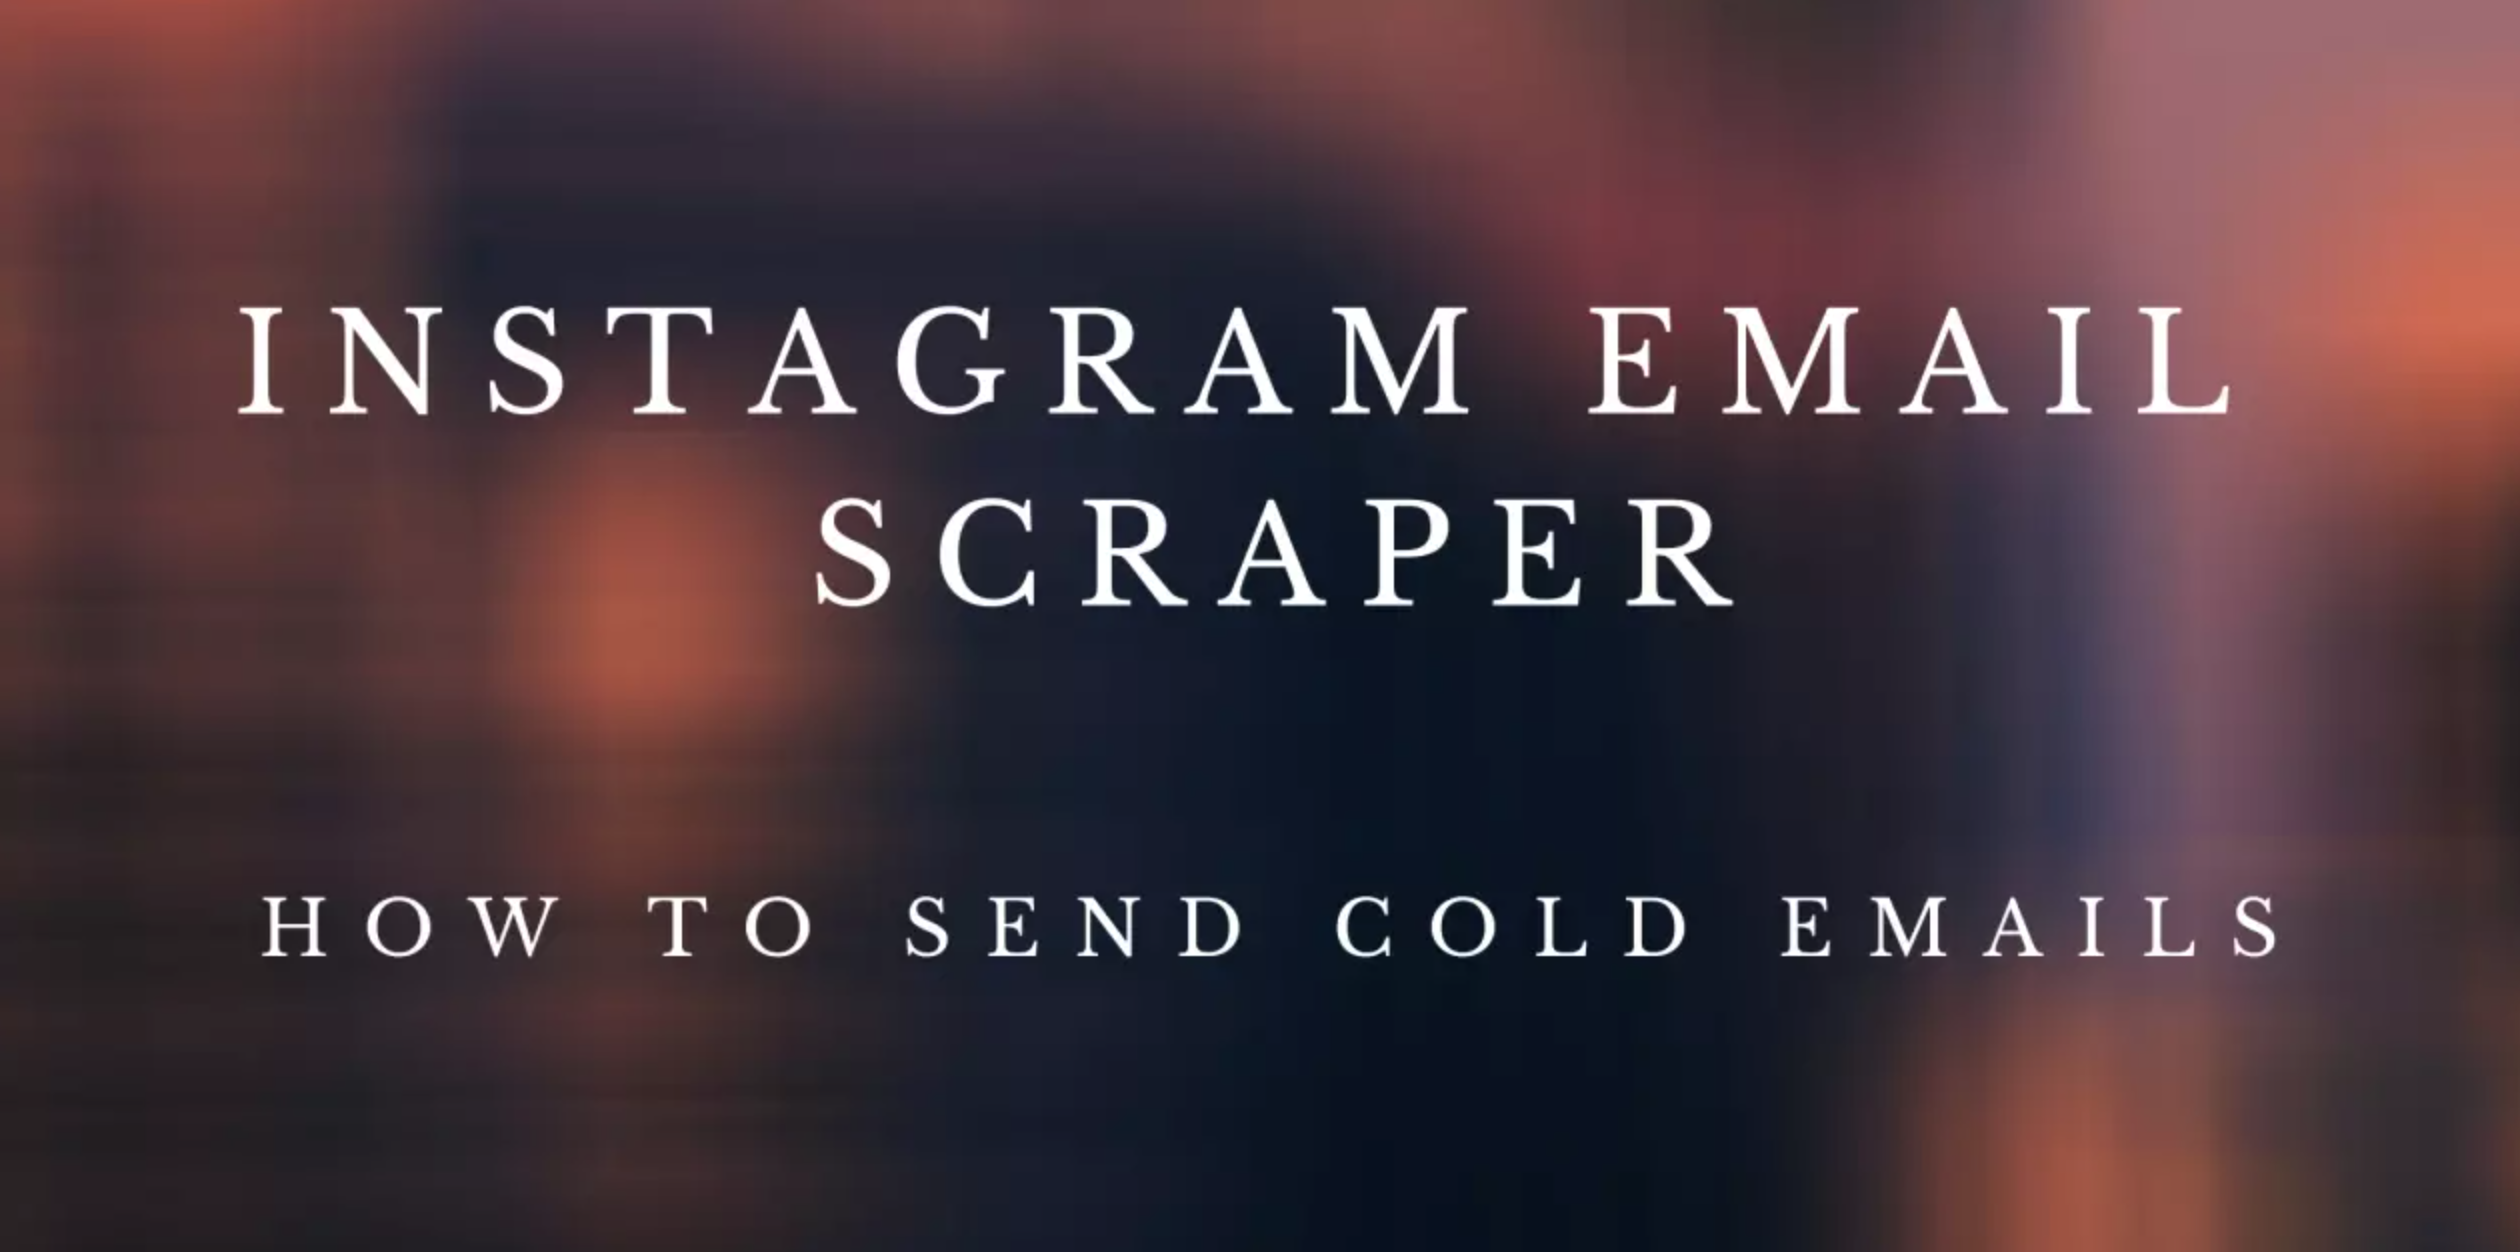 Email scraper for Instagram